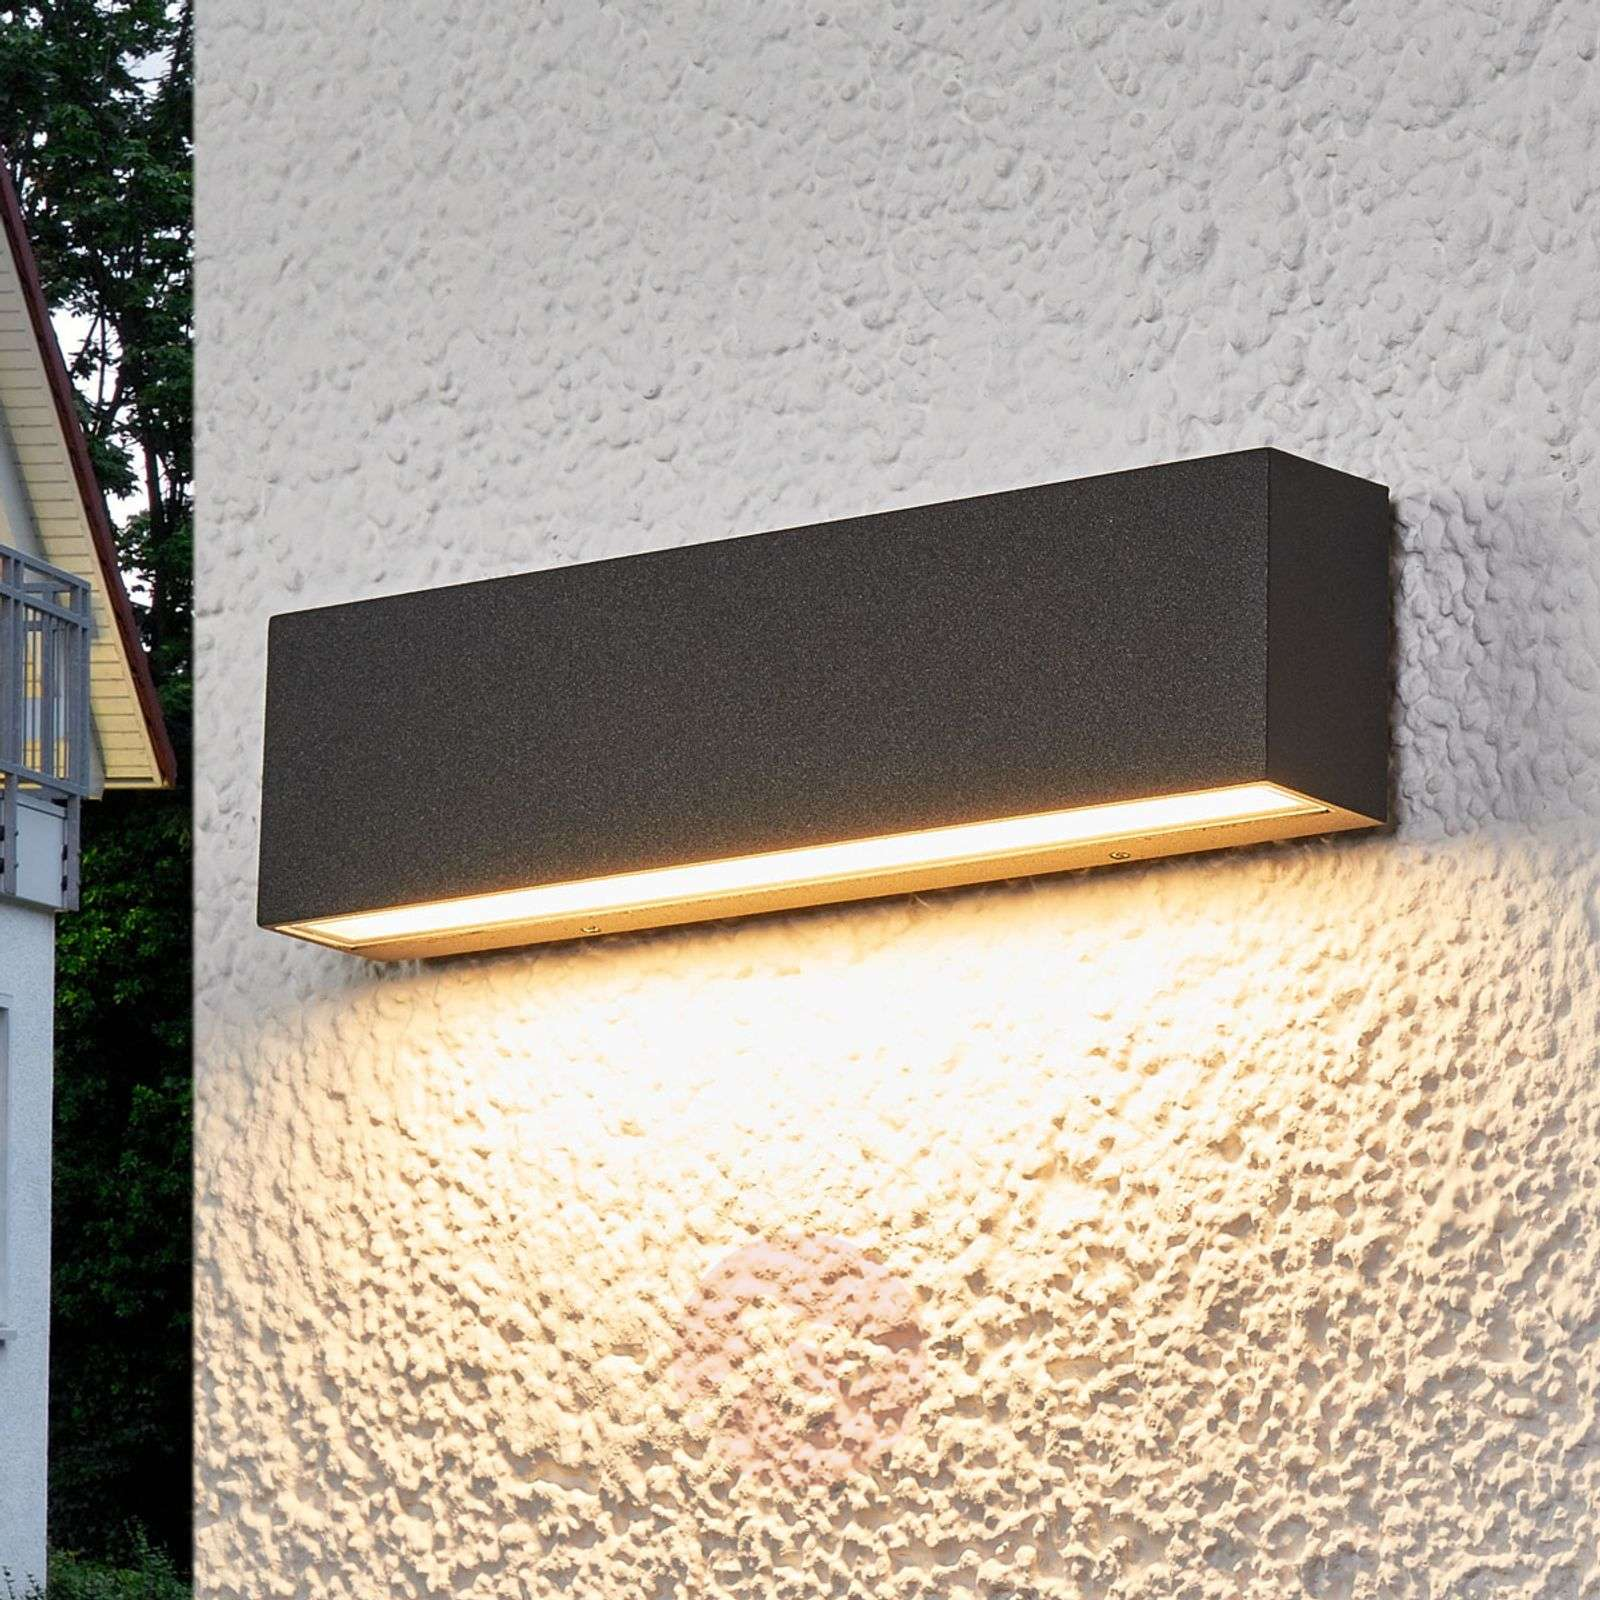 Aplique LED para ext. Elvira gris grafito, IP65-9616097-02